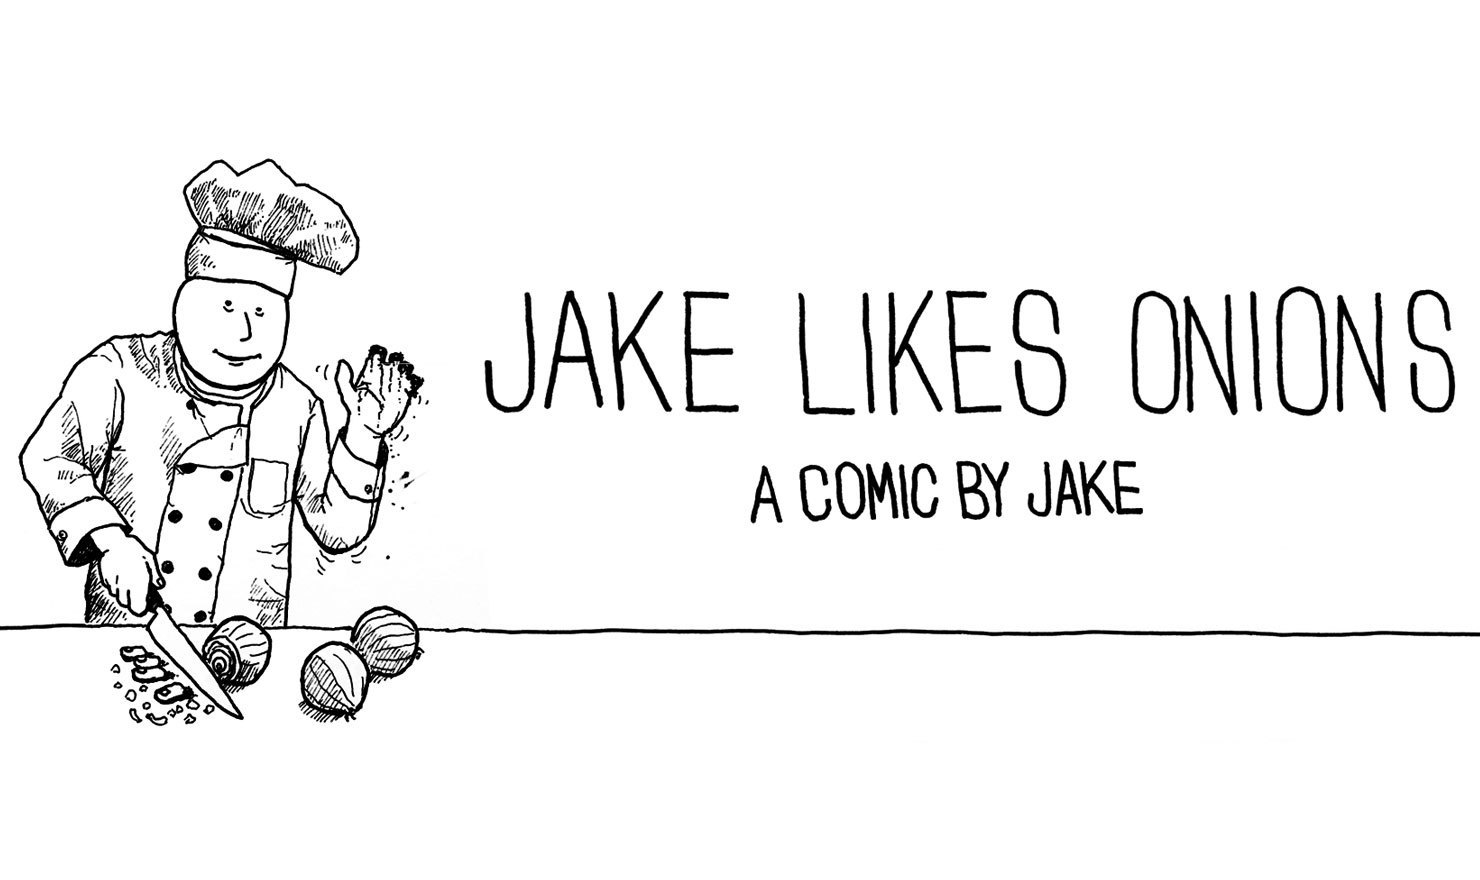 New Comic Alert: 'Jake Likes Onions' By Jake Thompson